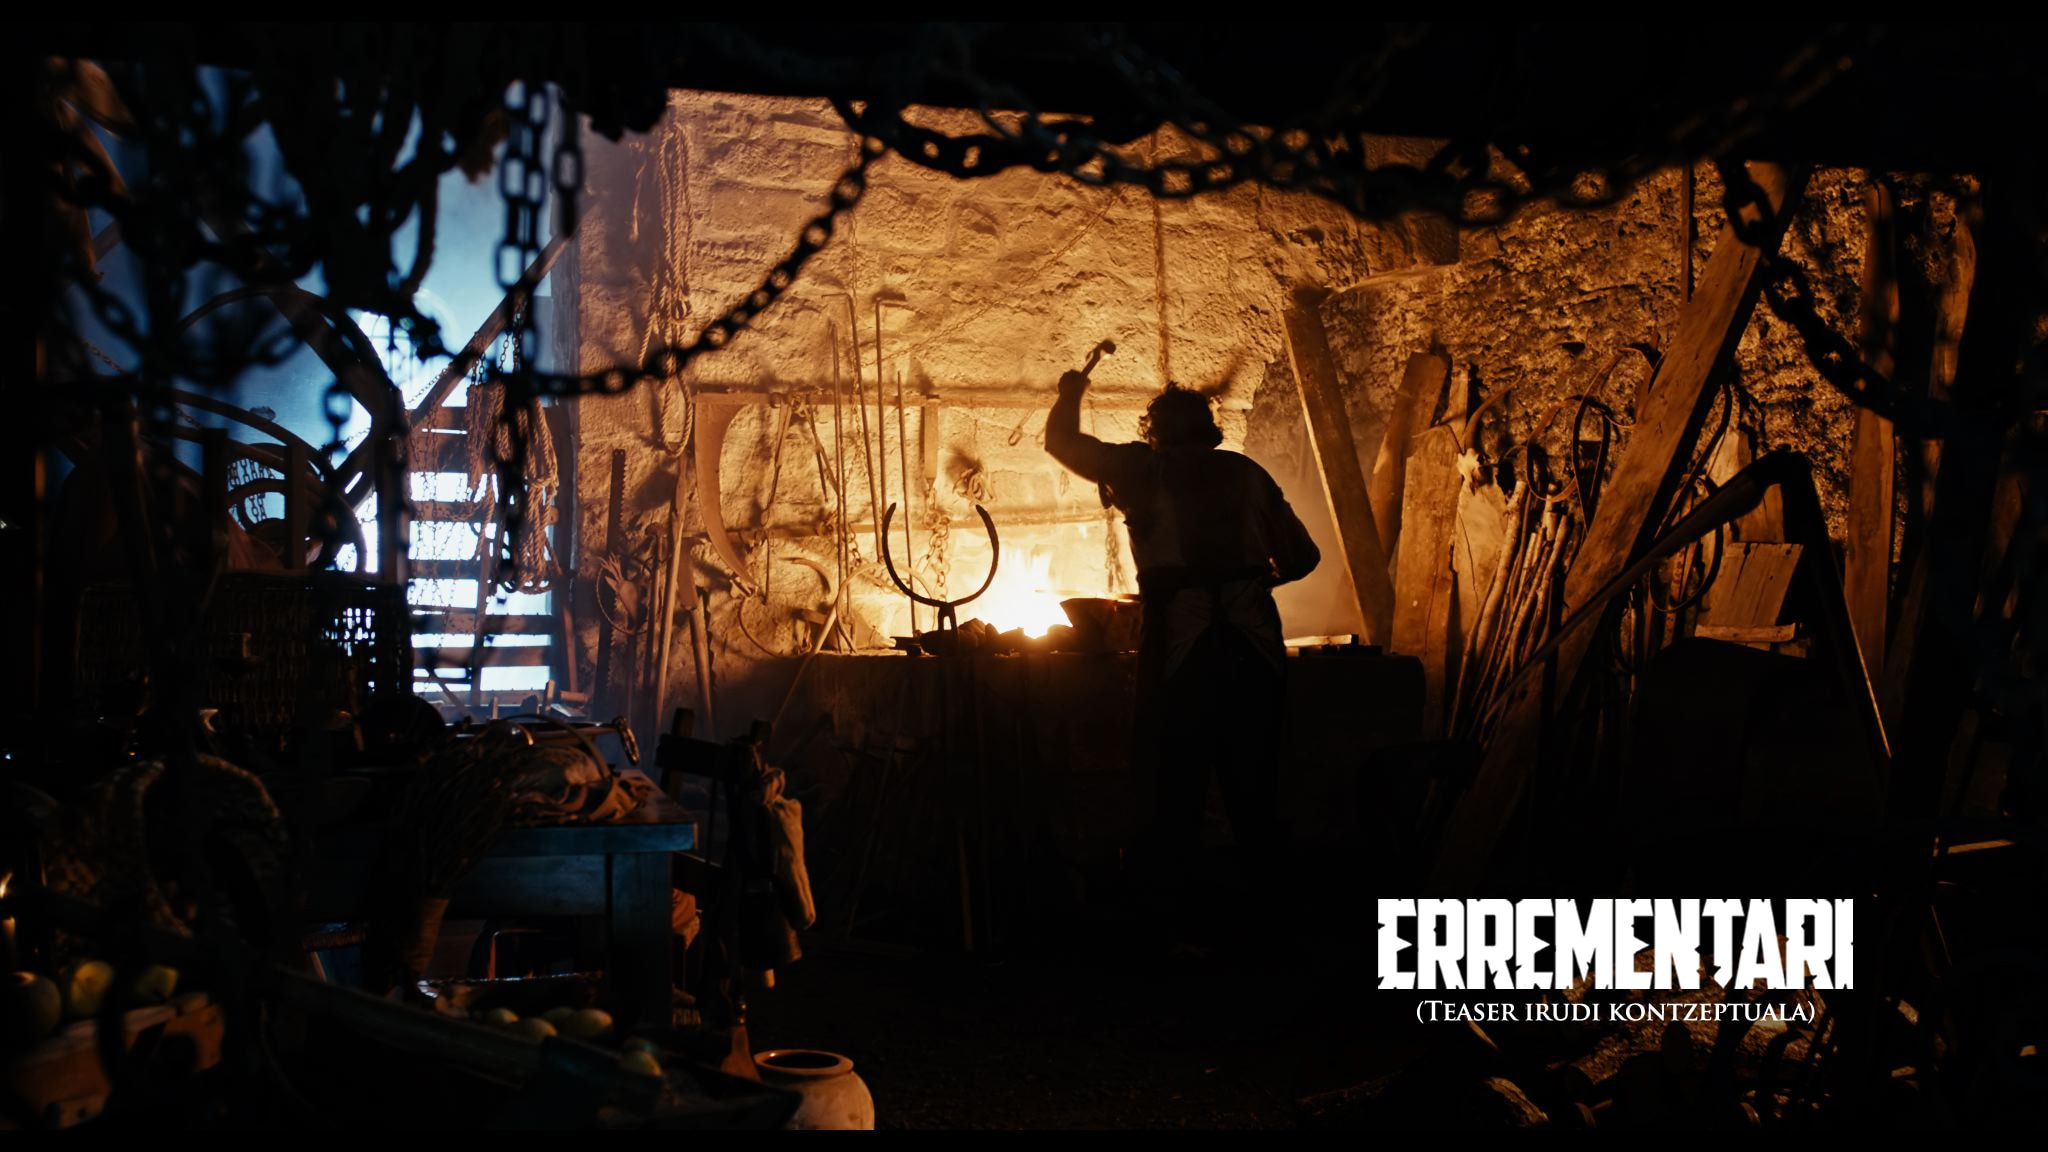 foto teaser conceptual Eusk - Paul Urkijo's Errementari (The Blacksmith and the Devil) Selected for Frontières@Brussels 2016